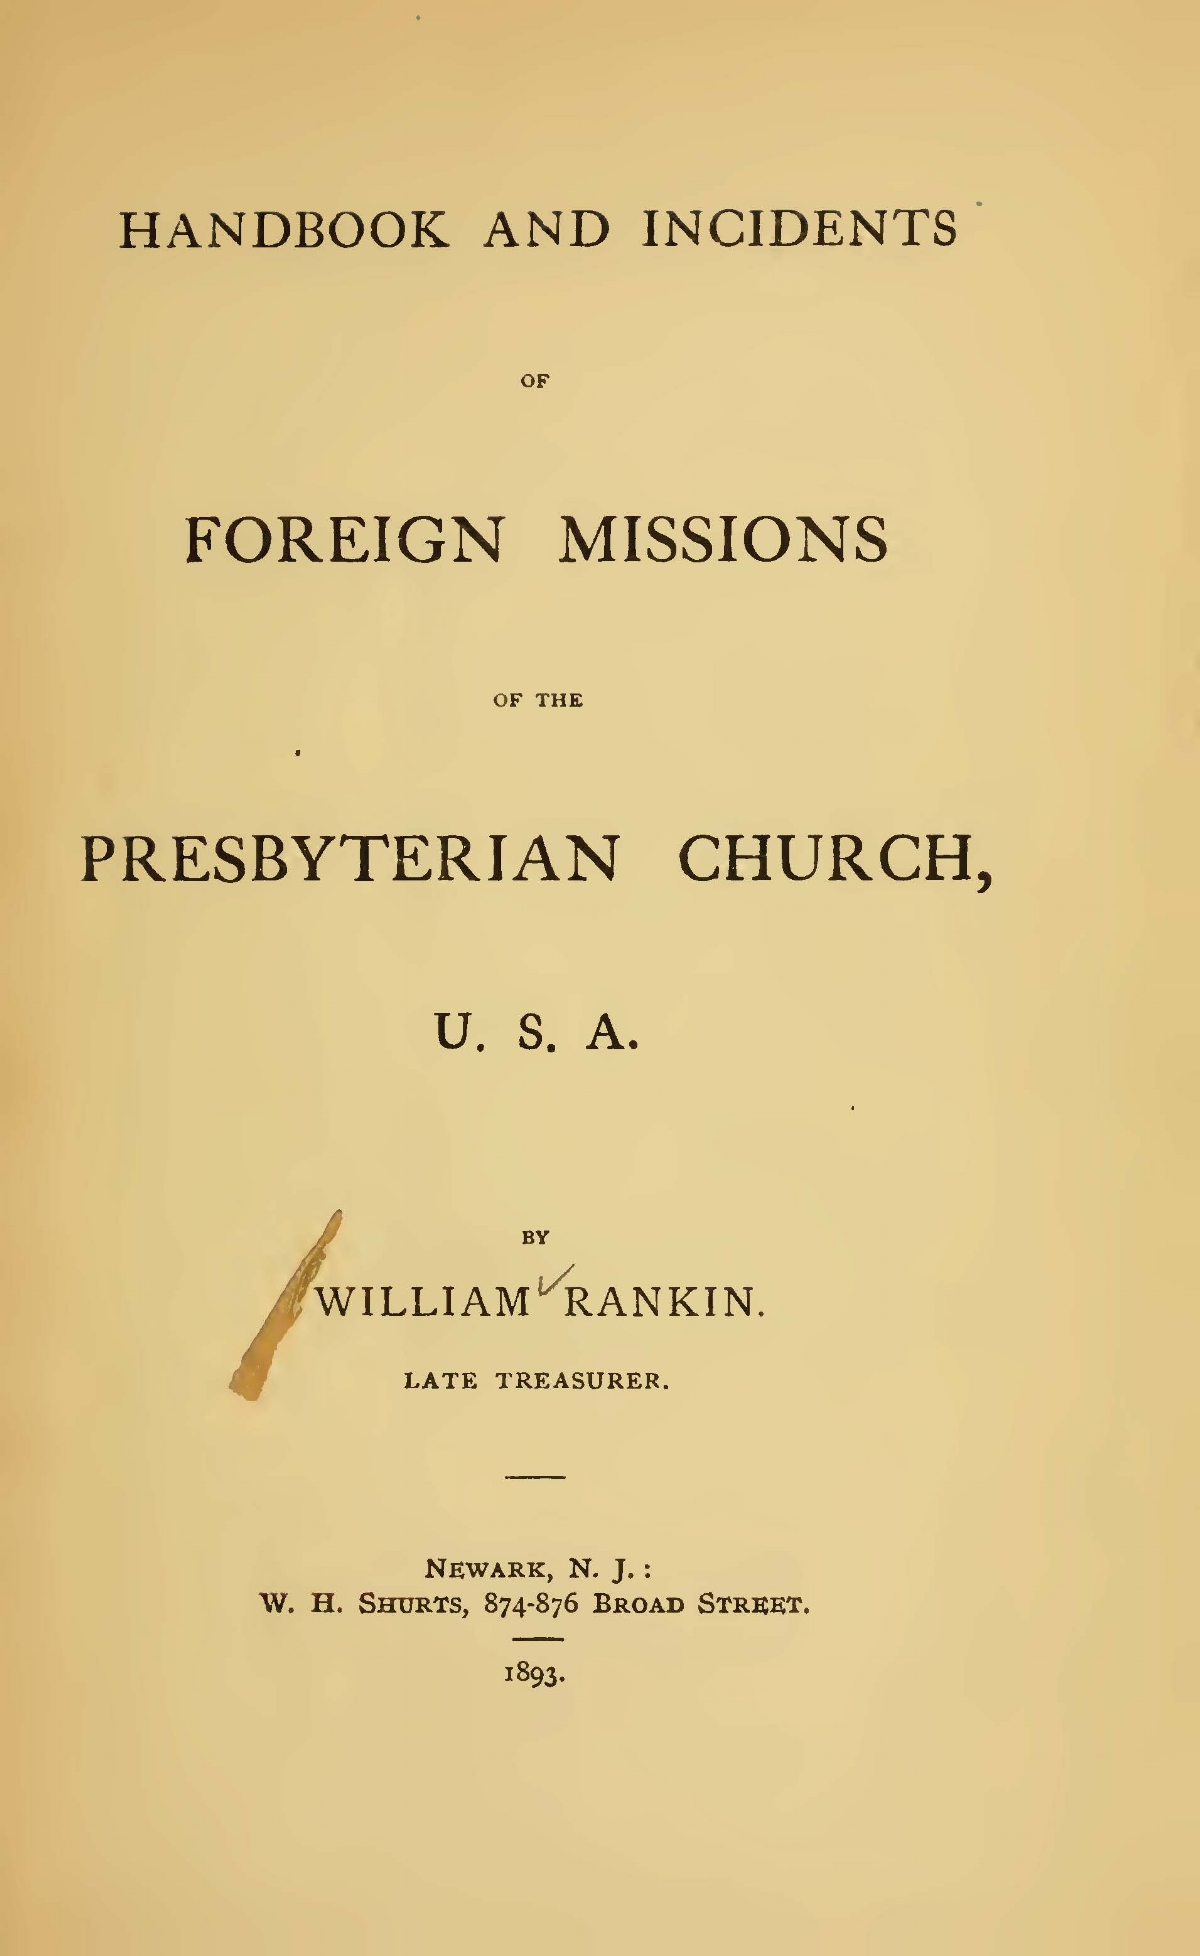 Rankin, William, Handbook and Incidents of Foreign Missions of the Presbyterian Church, U.S.A. Title Page.jpg